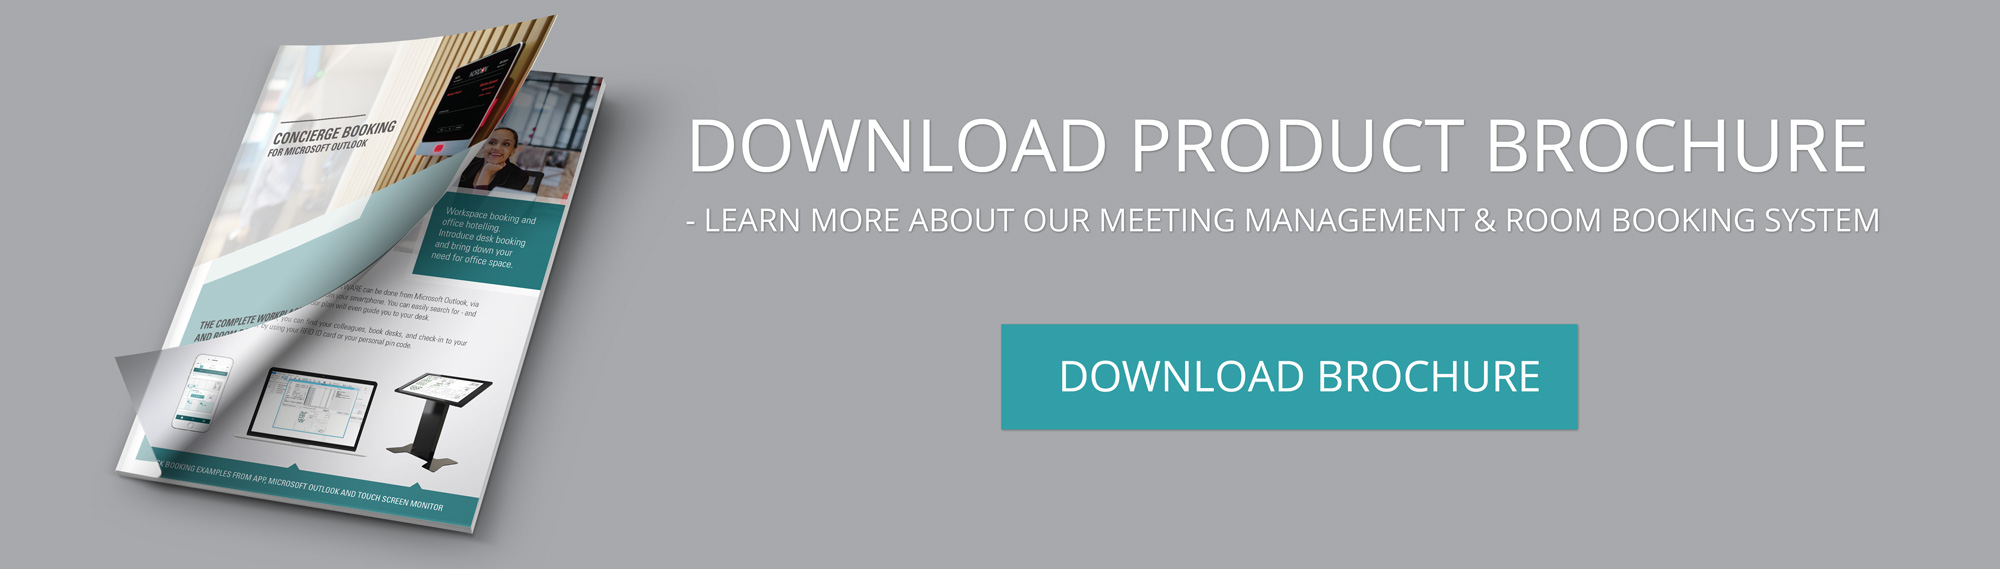 6 signs you need a new meeting management system | Fischer & Kerrn